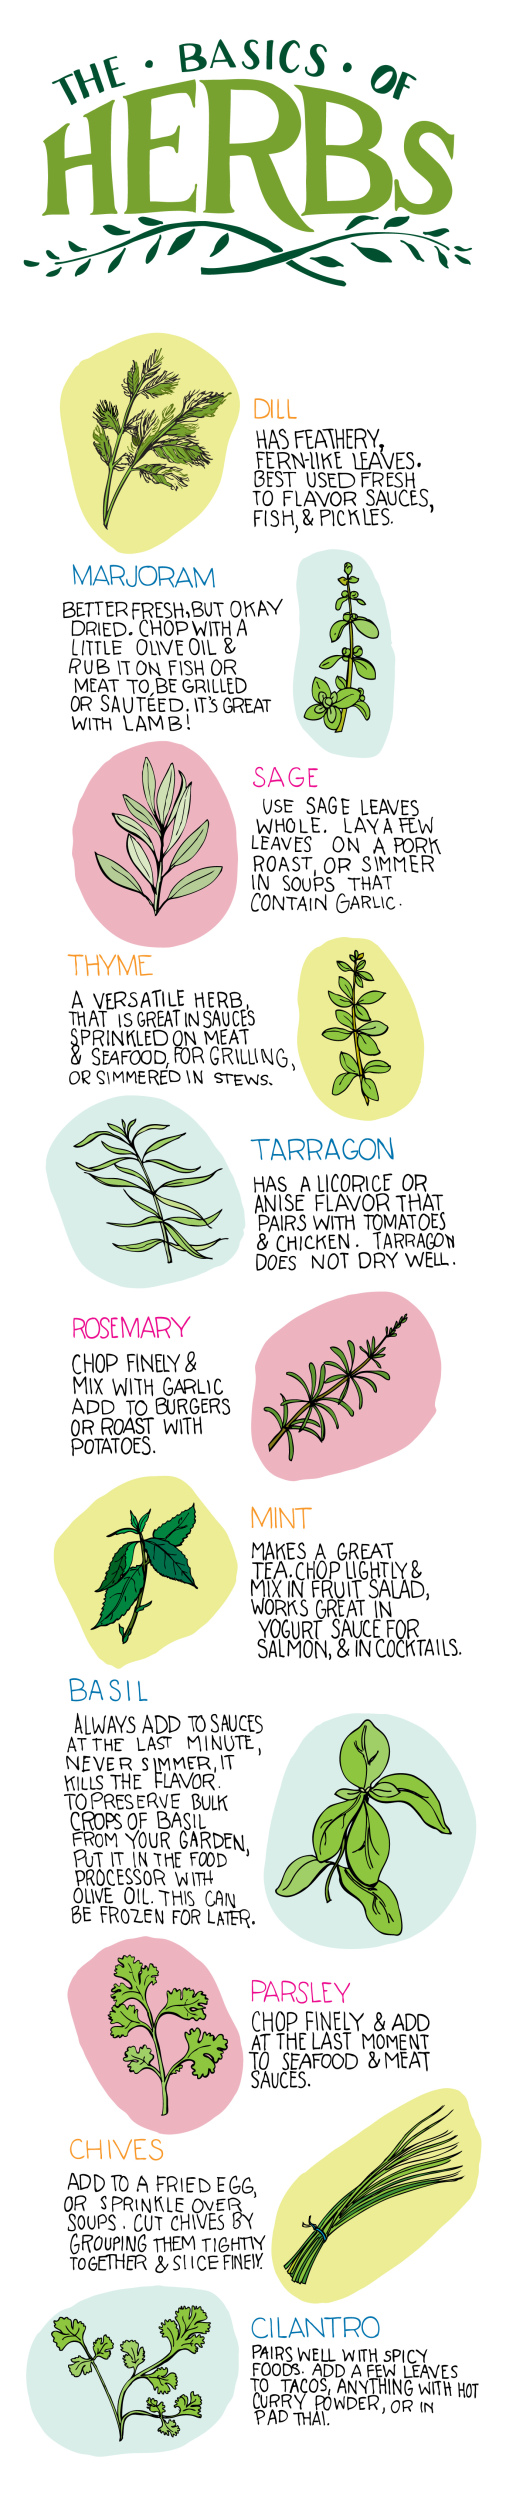 The Basics of Herbs Infographic - Best Infographics